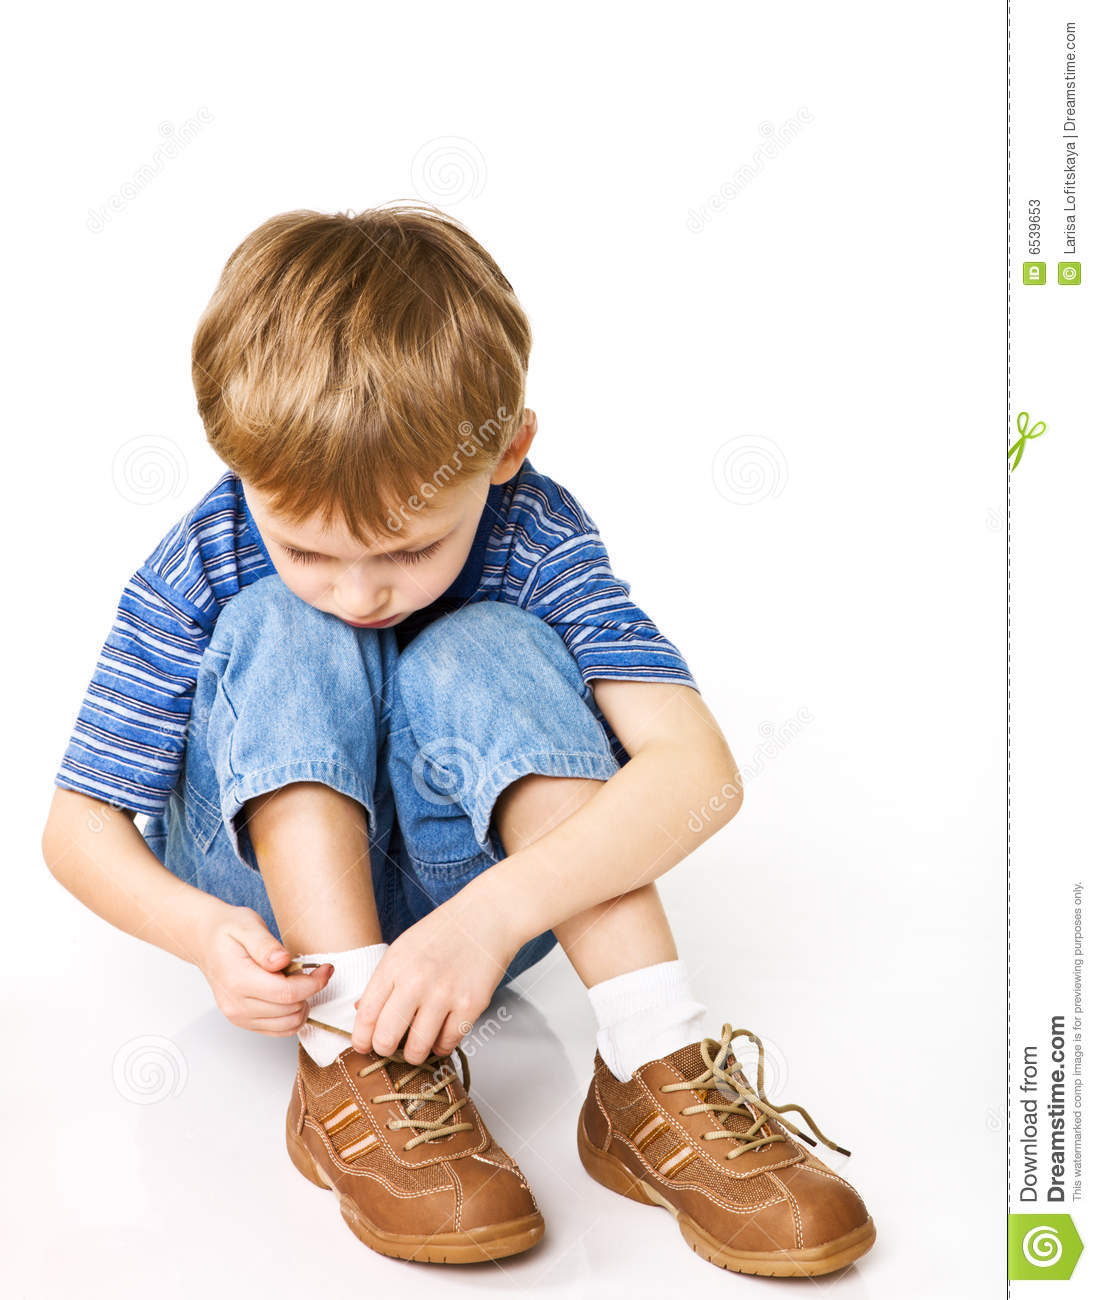 how to teach child to tie shoelaces